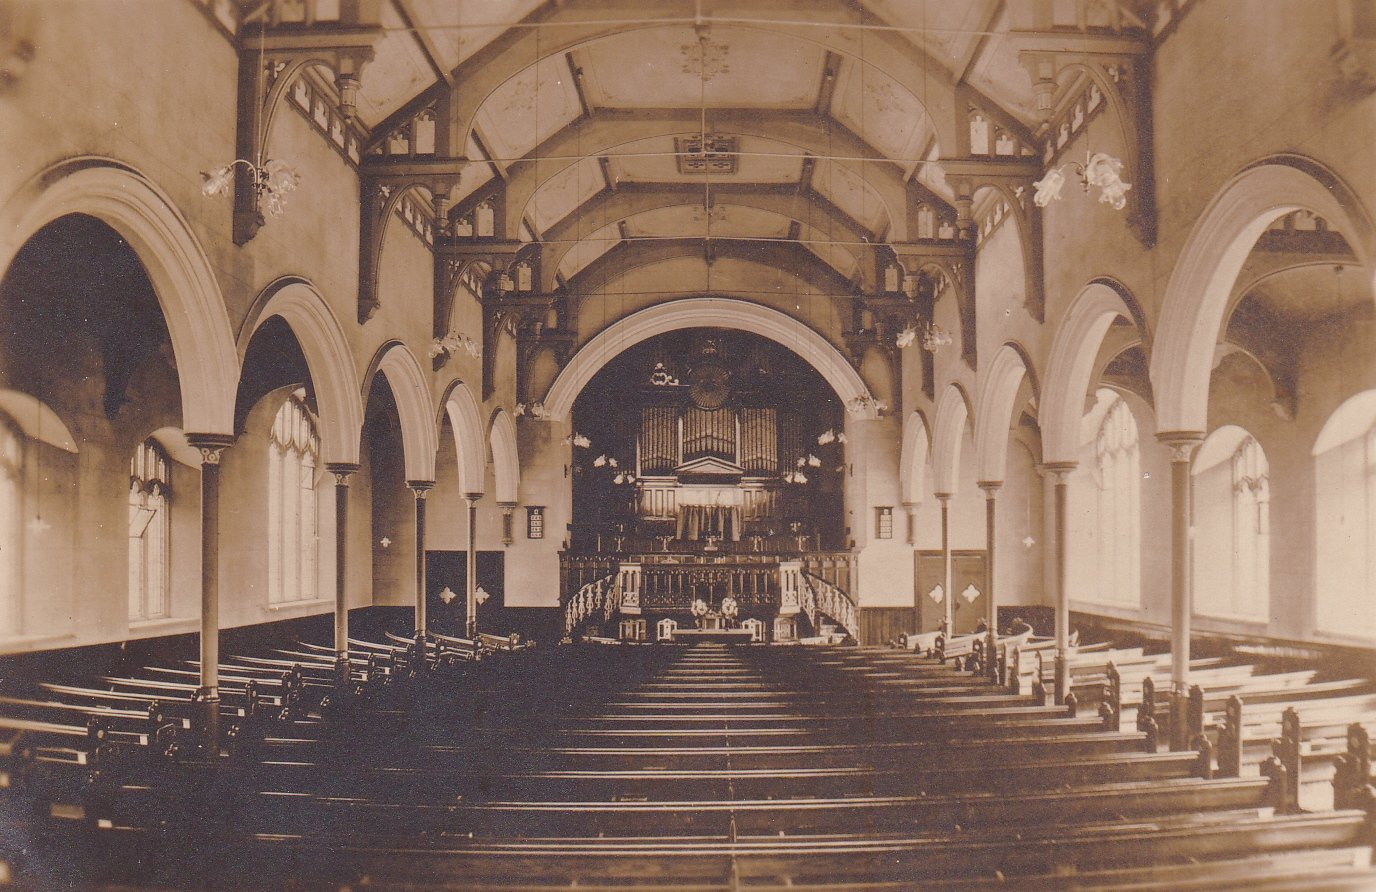 The Original Interior